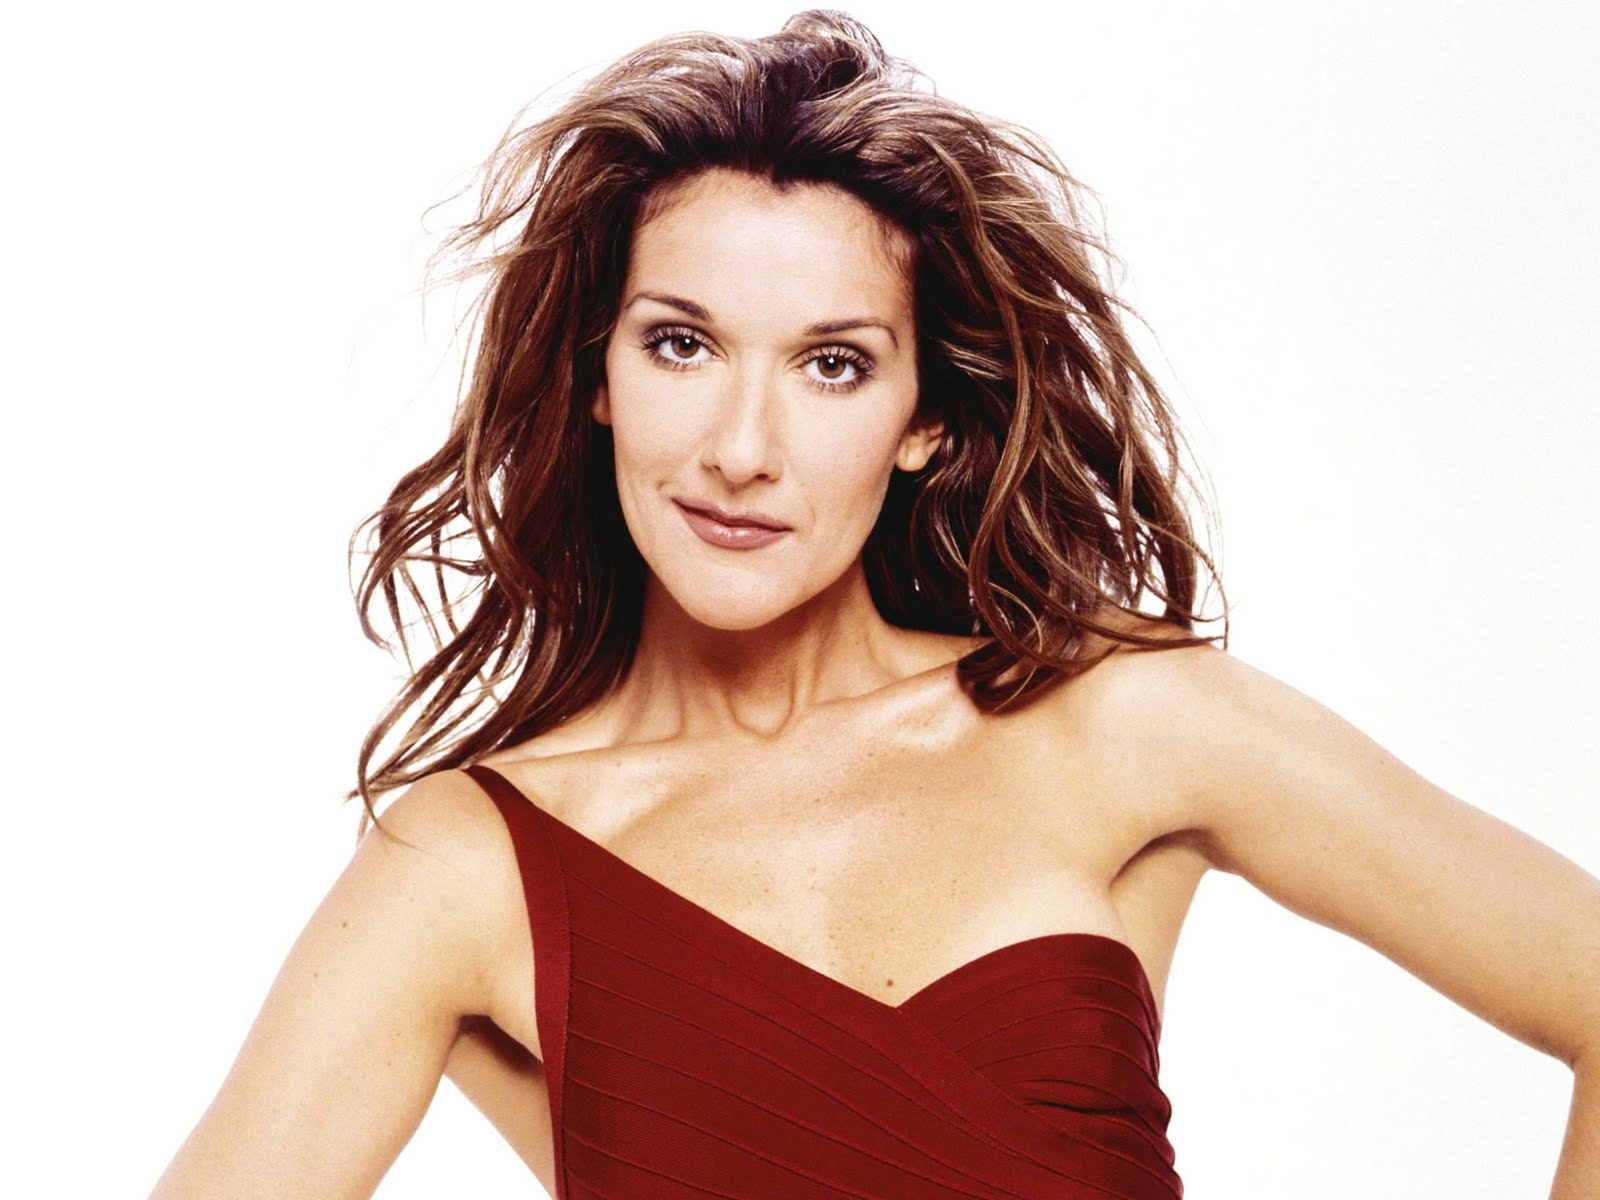 A New Day Has Come Album Photoshoot - Celine Dion Photo